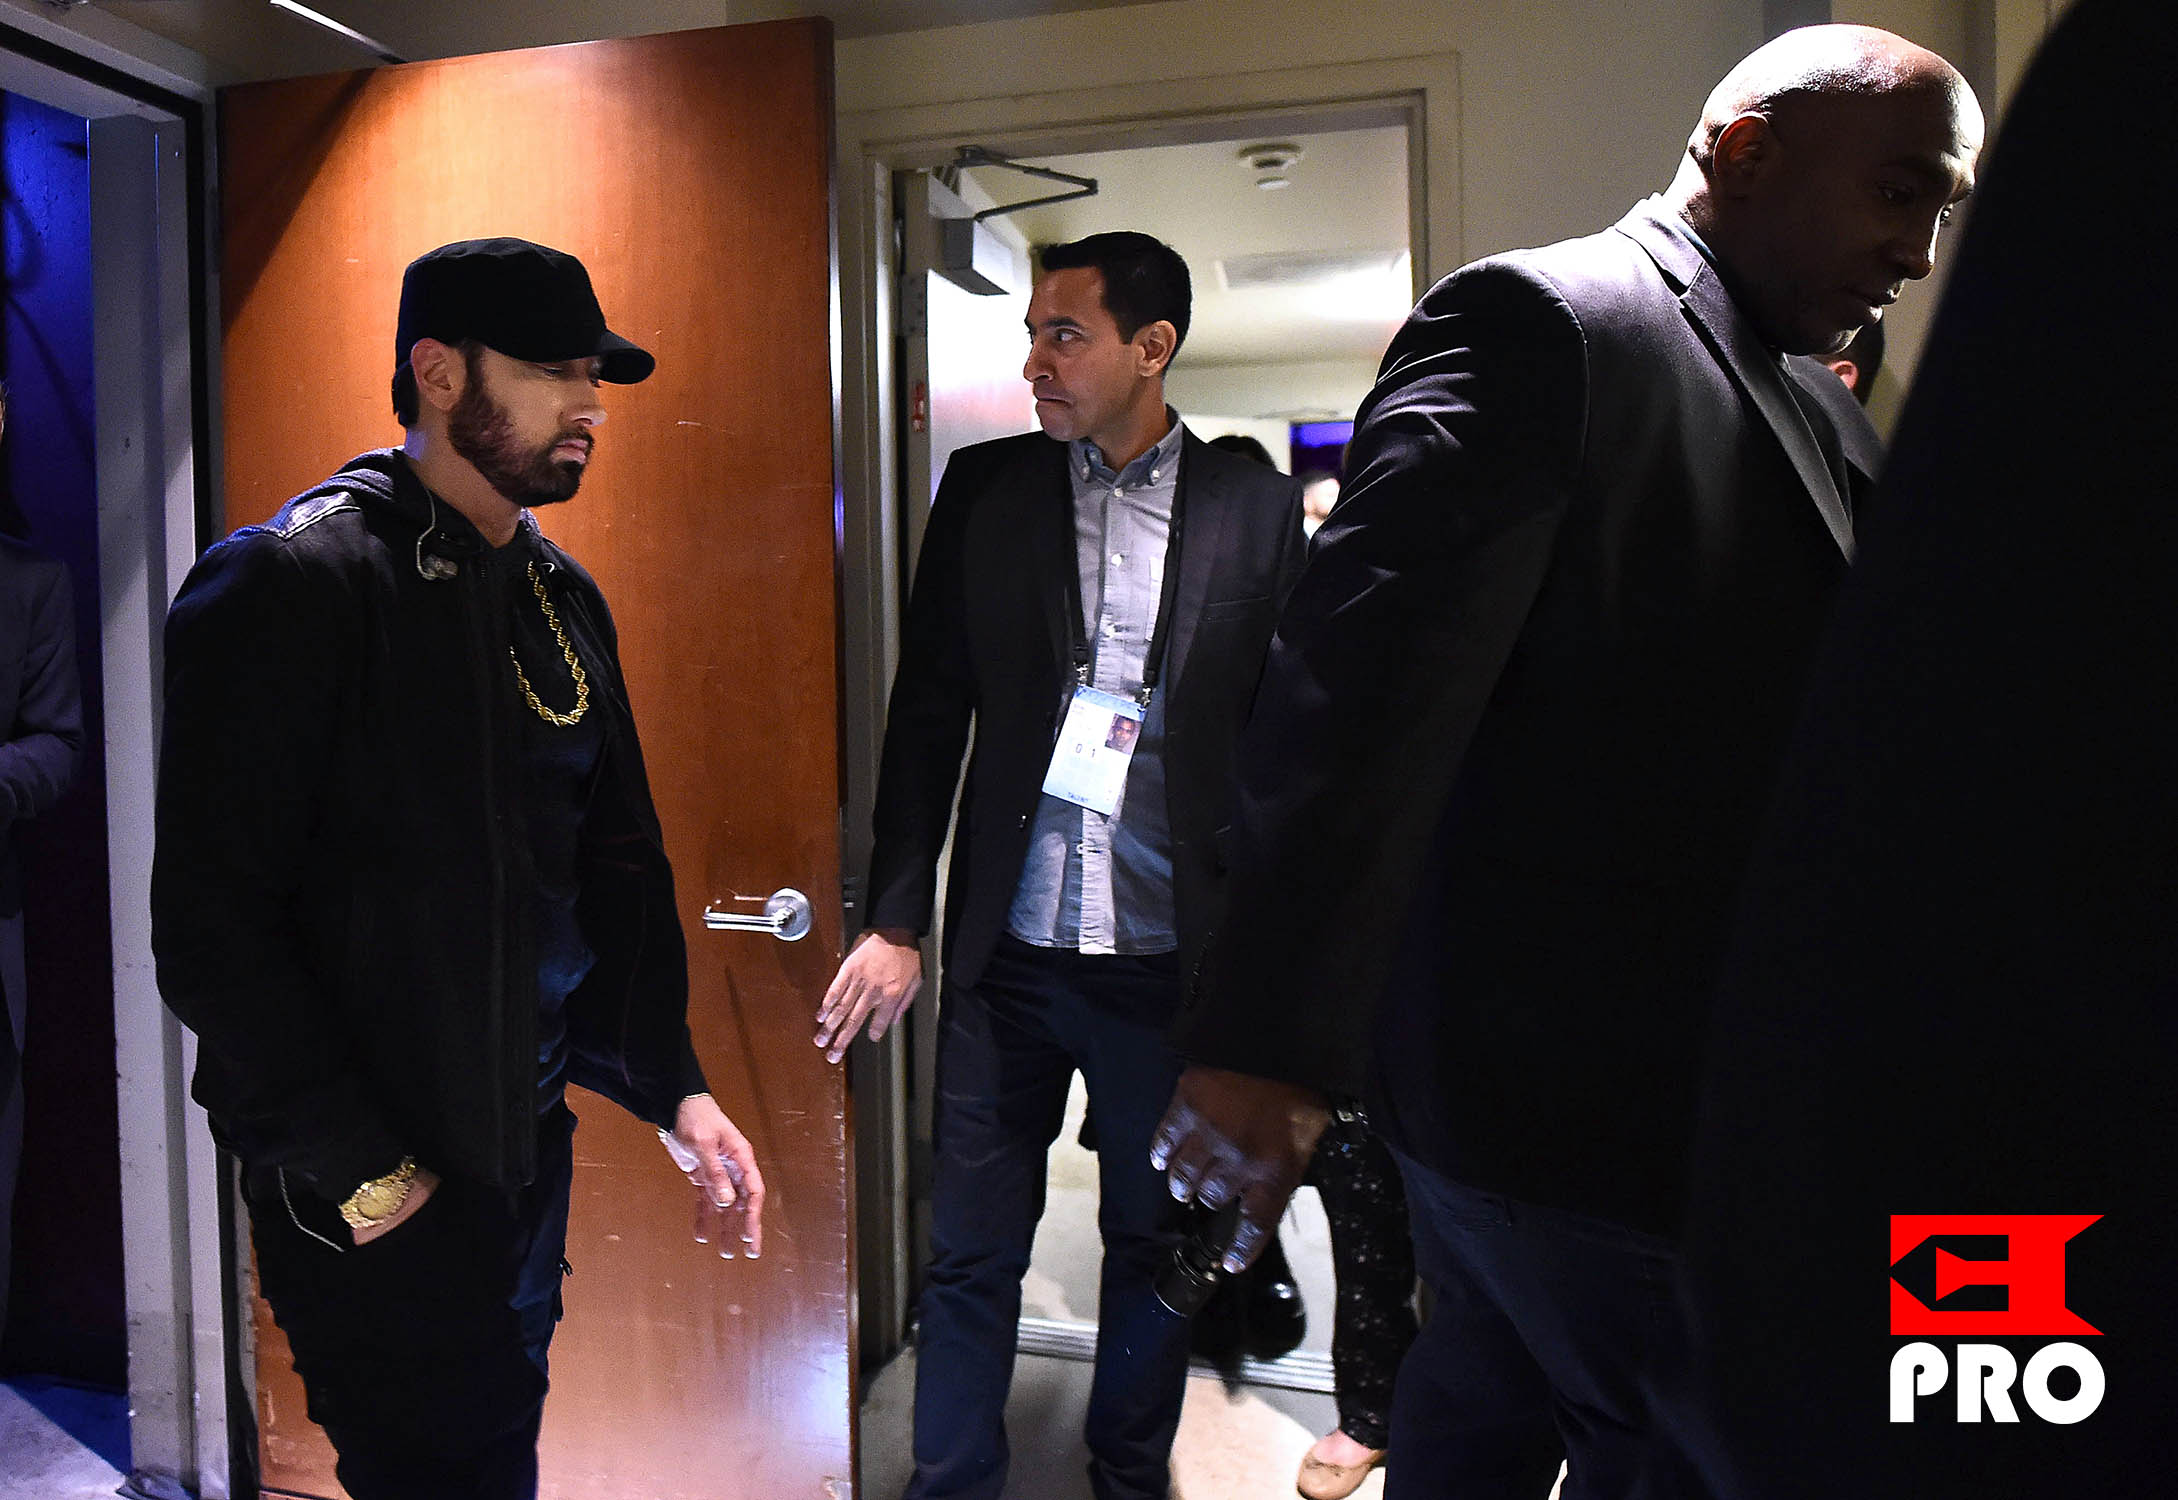 Eminem walks backstage during the 92nd Annual Academy Awards at the Dolby Theatre on February 09, 2020 in Hollywood, California. (Photo by Matt Petit)